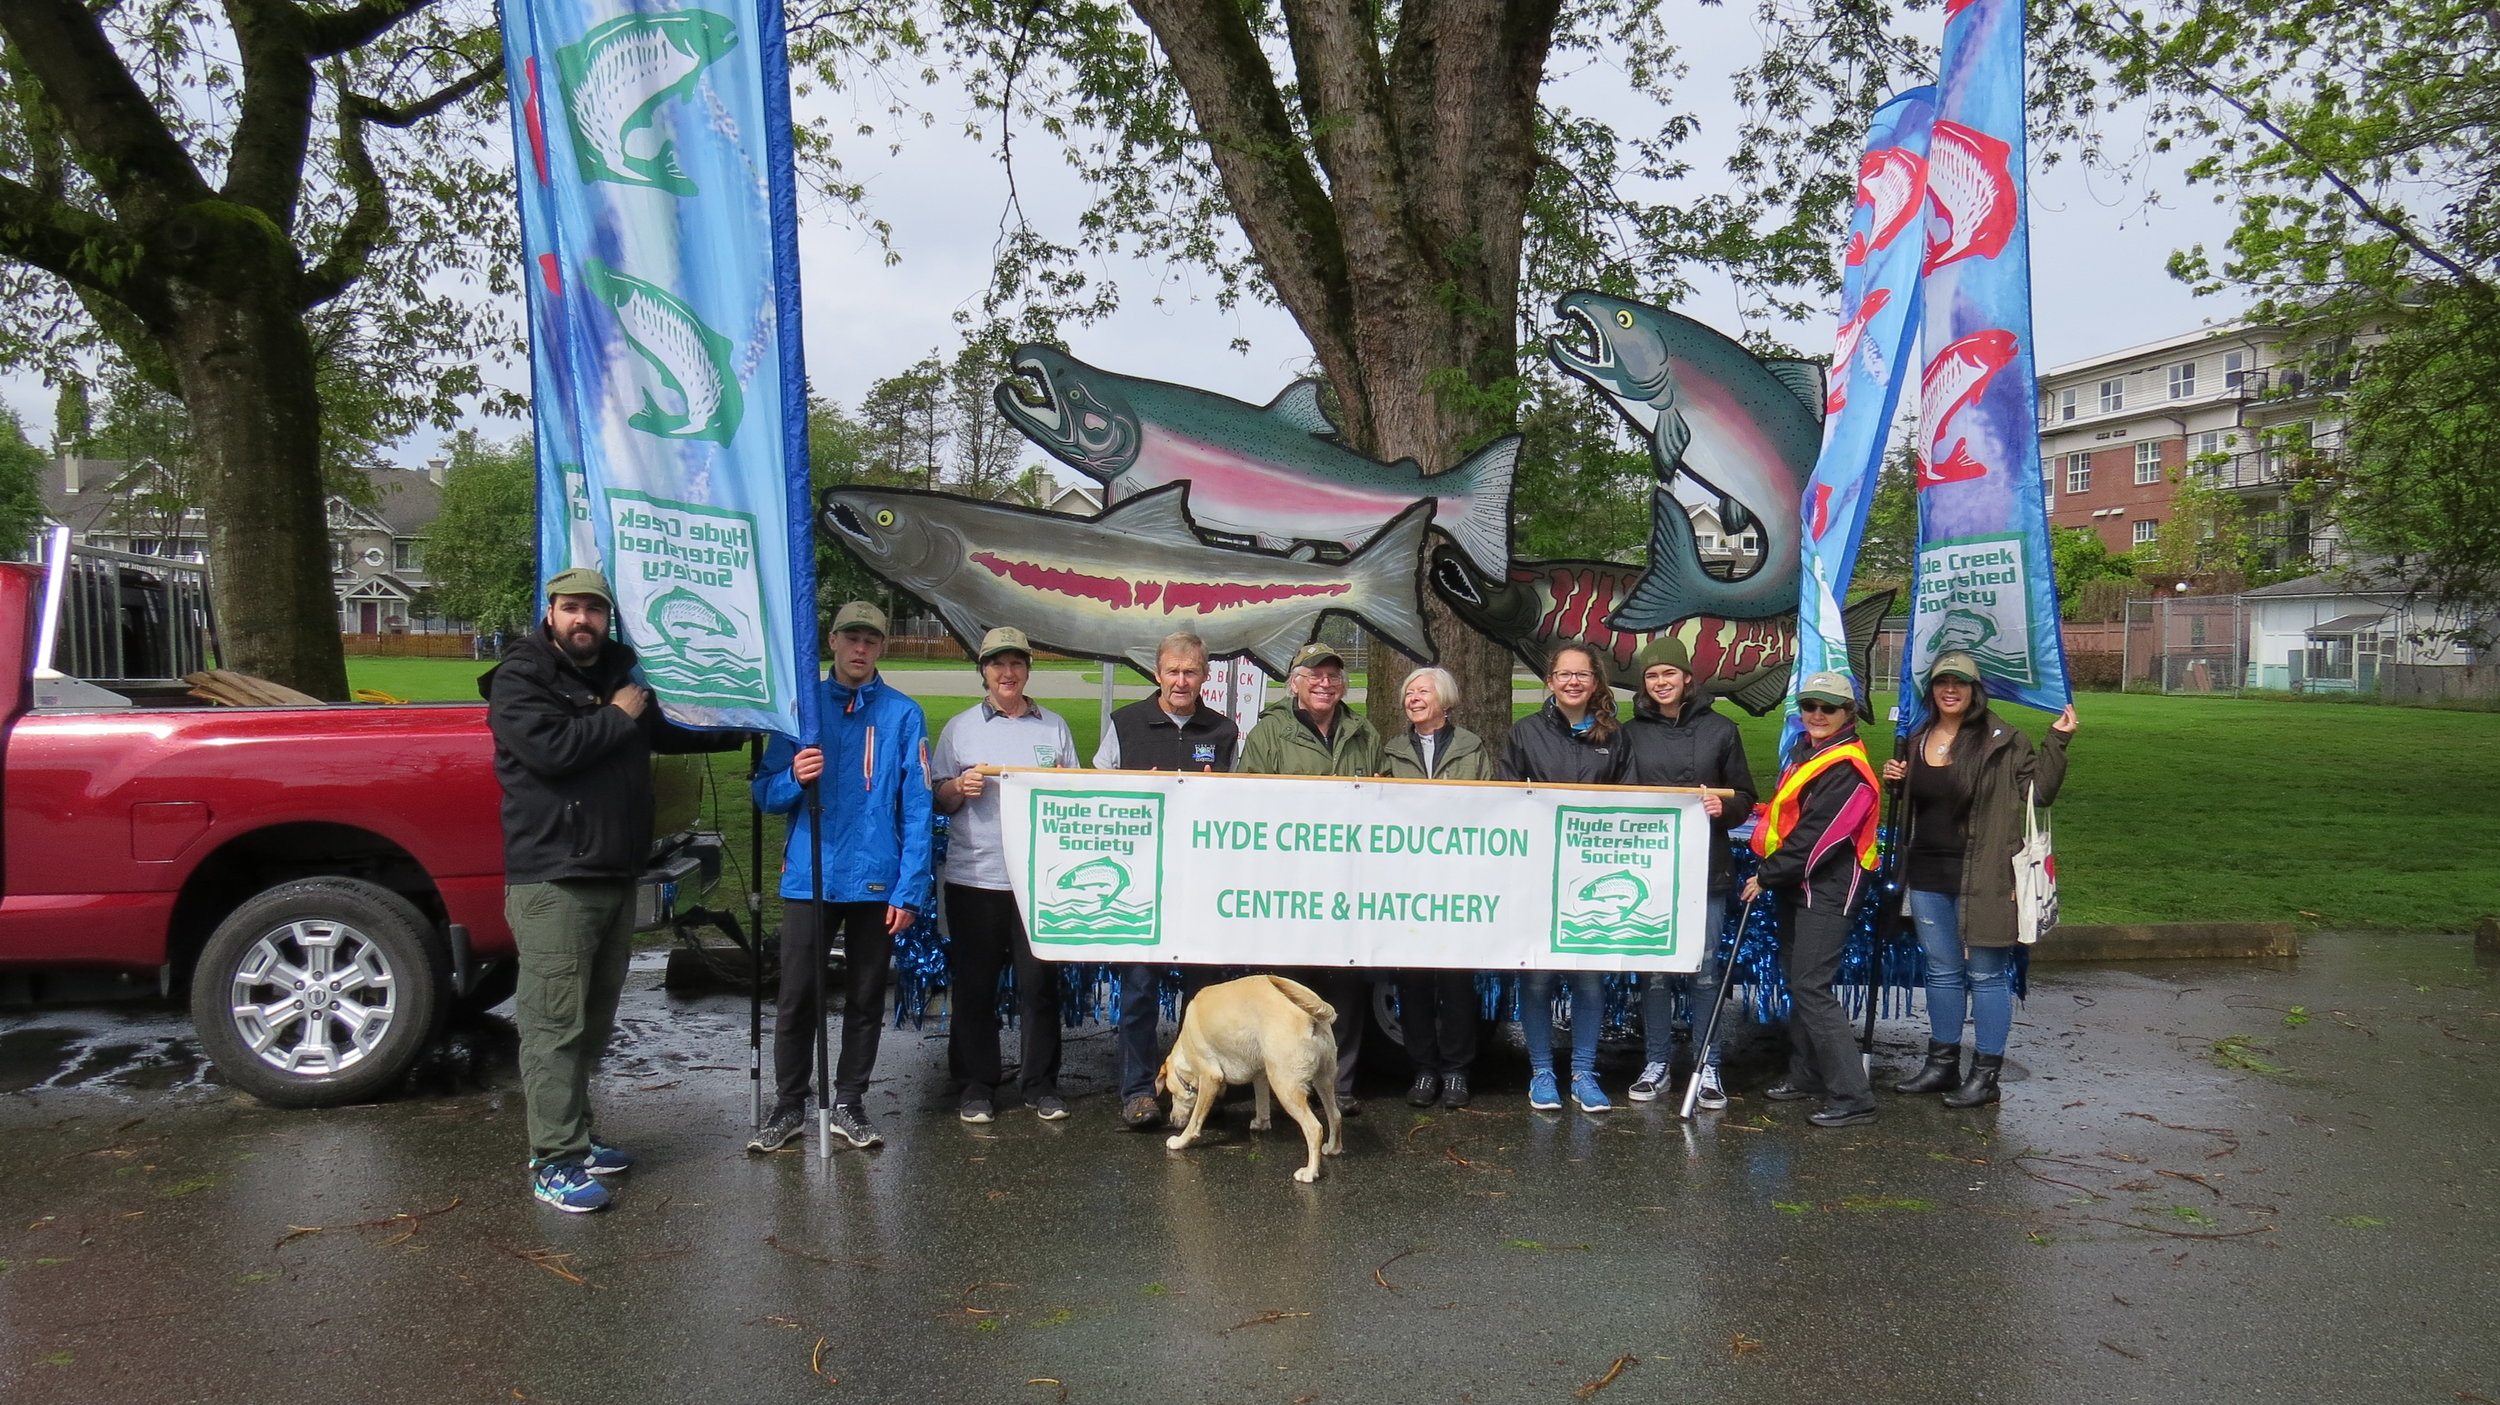 May Day Parade - May 13 2017The day began with showers. By parade time the sun was shining and another great event. Thank you to the members and students who came out to set up and walk in the parade.